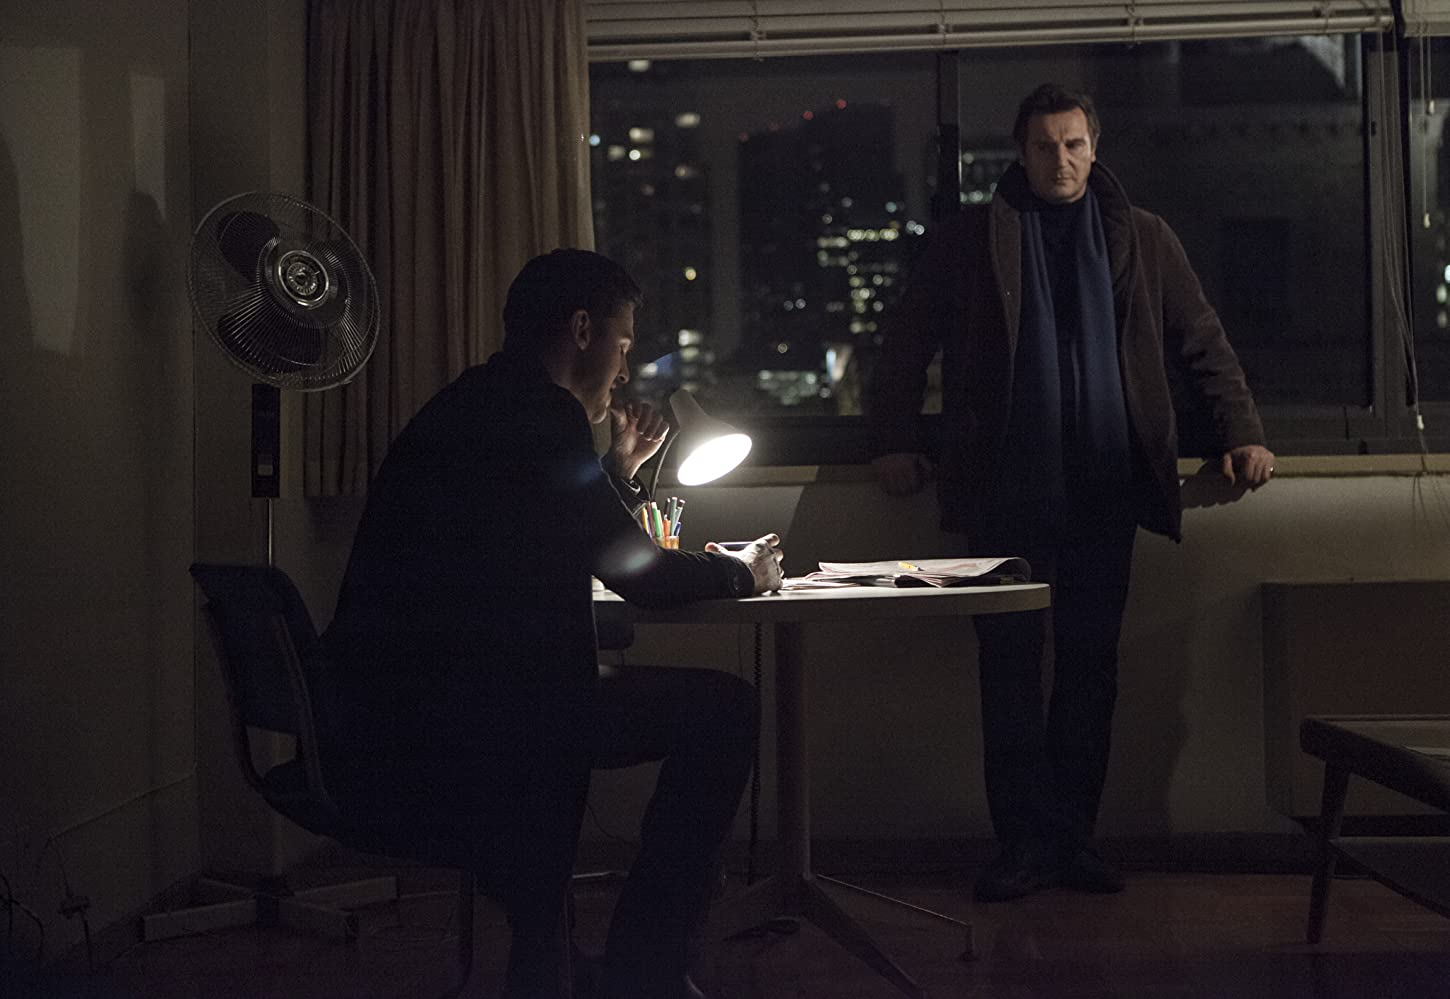 Liam Neeson and Dan Stevens in A Walk Among the Tombstones (2014)